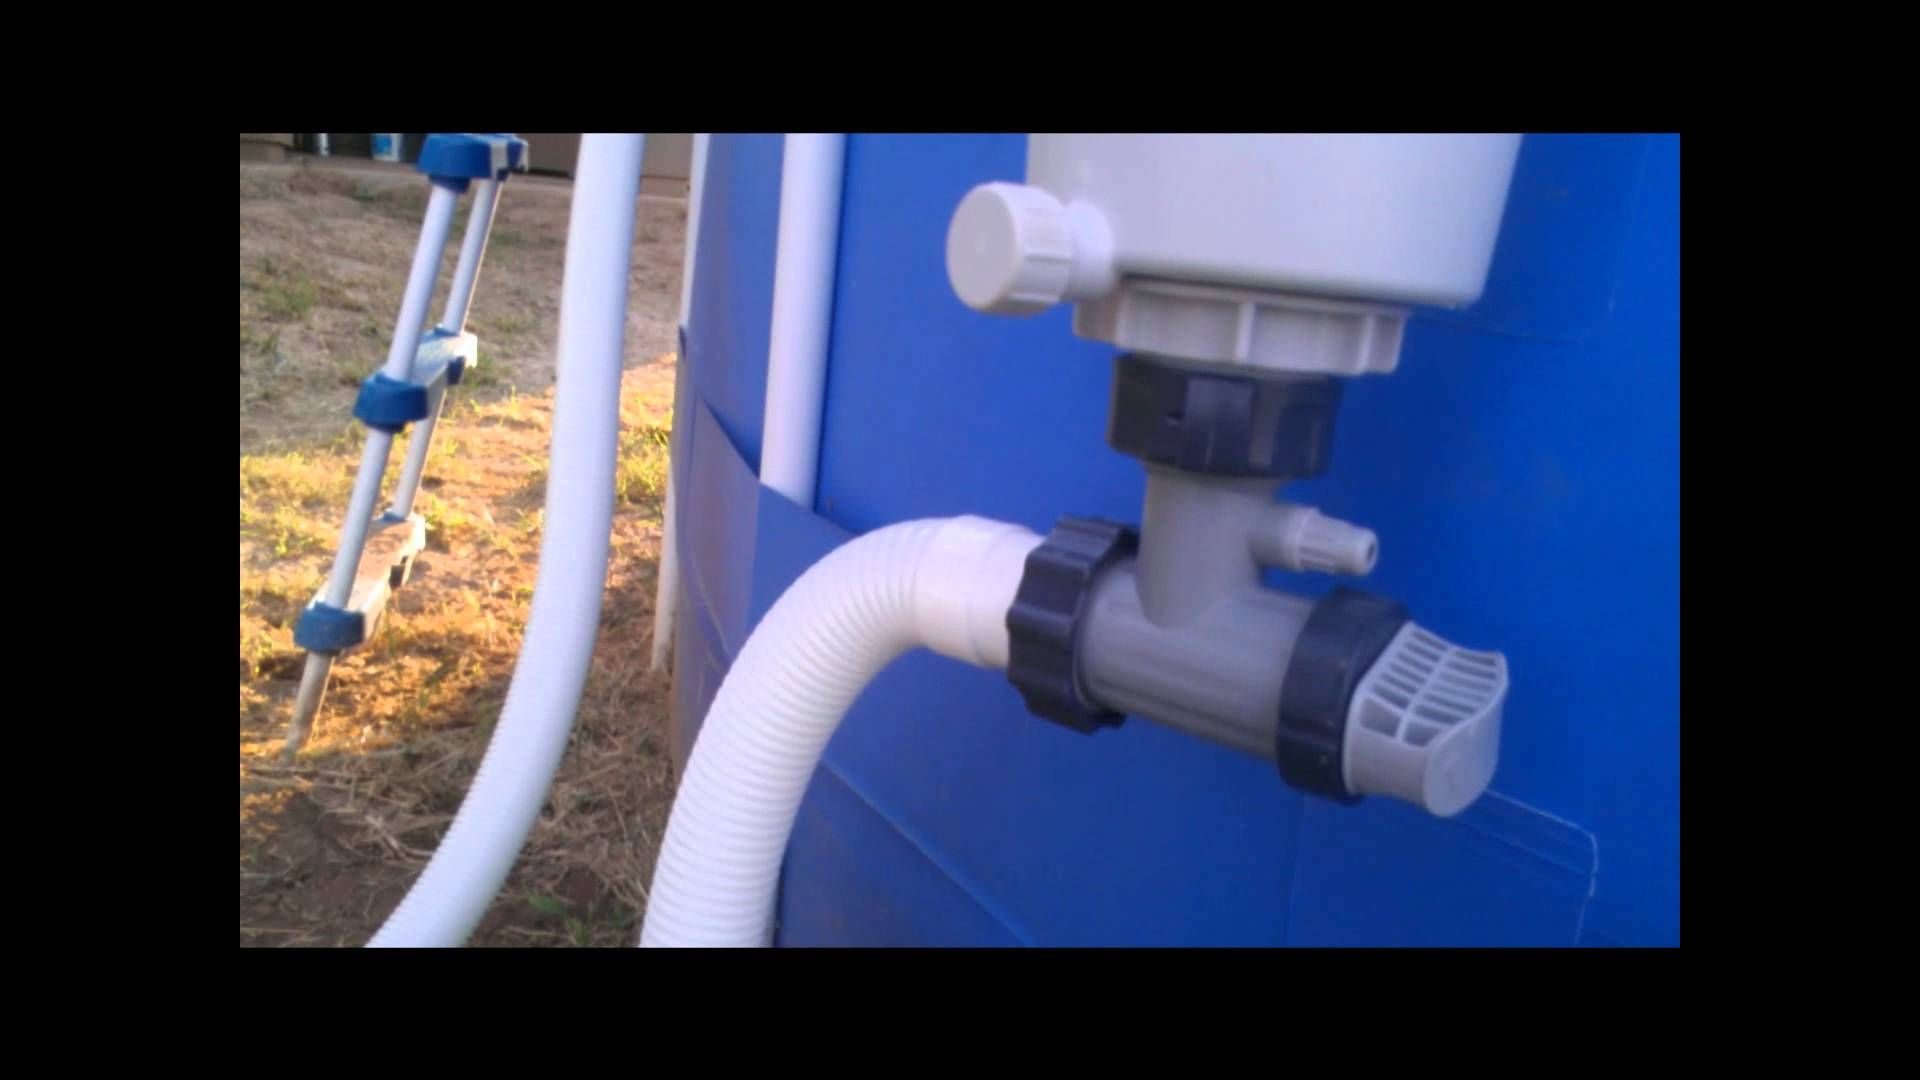 Intex Pool Pump Youtube Converting The Summer Escapes Pool Filter To Intex Filteration For